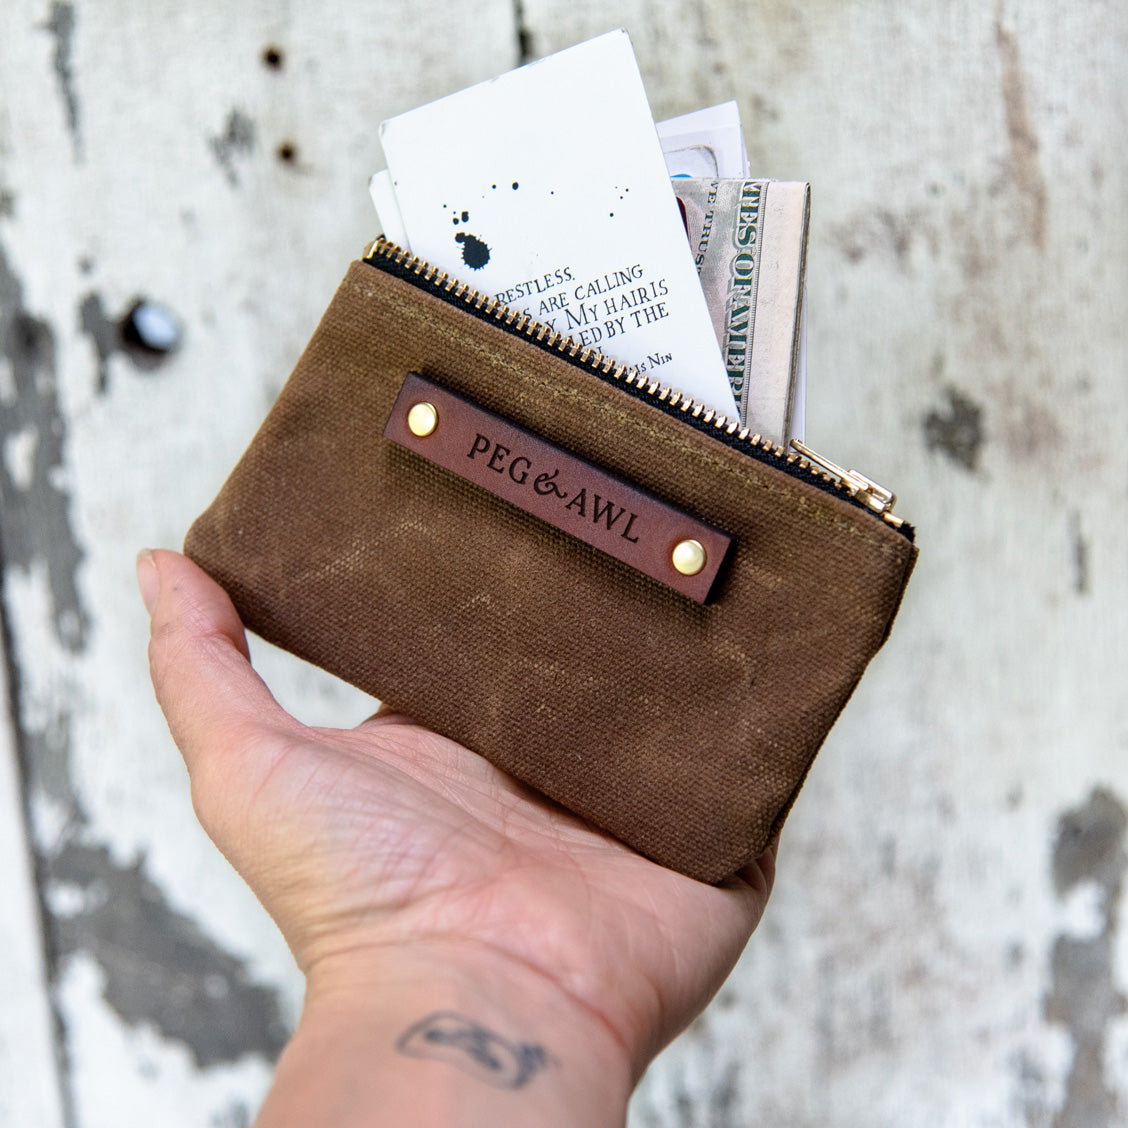 The Spender Pouch by Peg and Awl